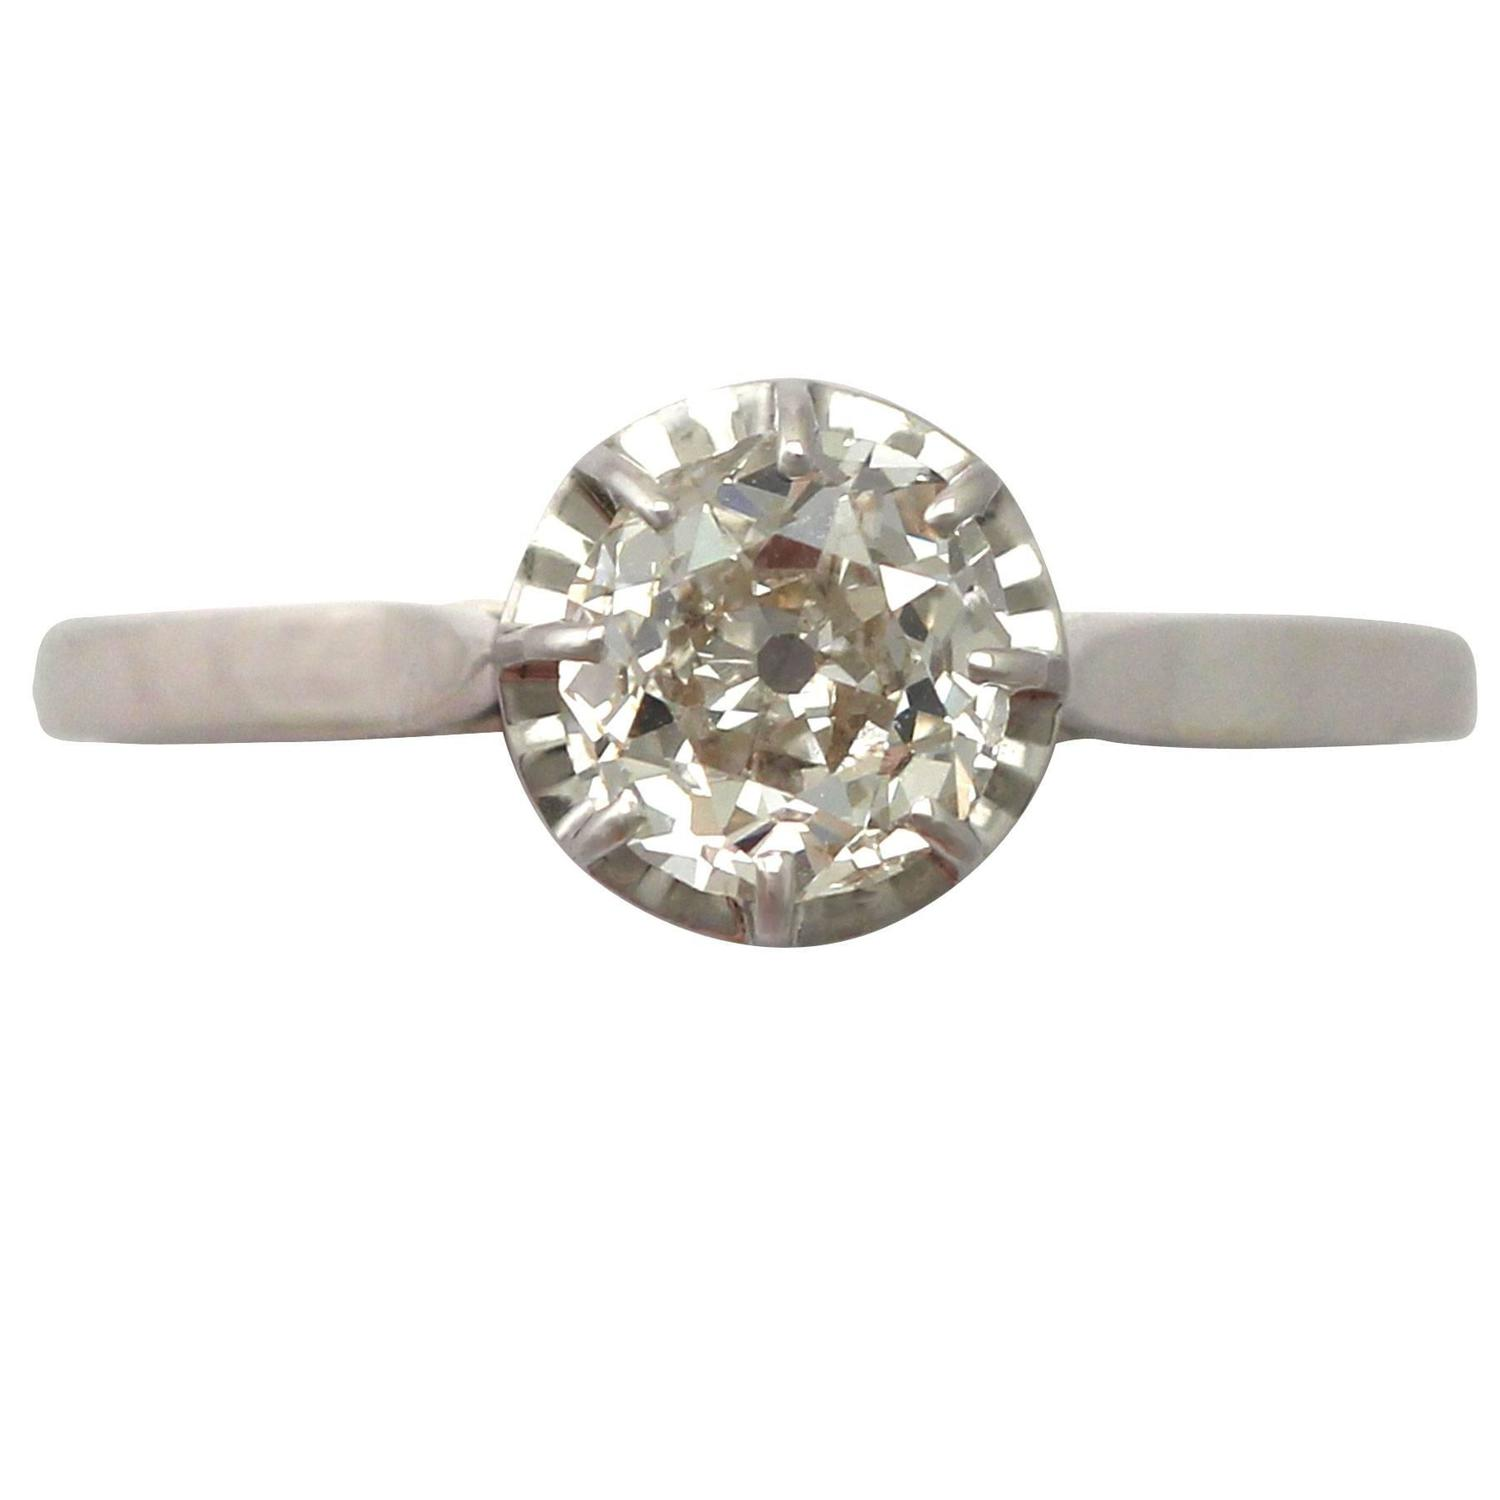 1920s French 1 70 Carat Diamond and 18k White Gold Solitaire Ring